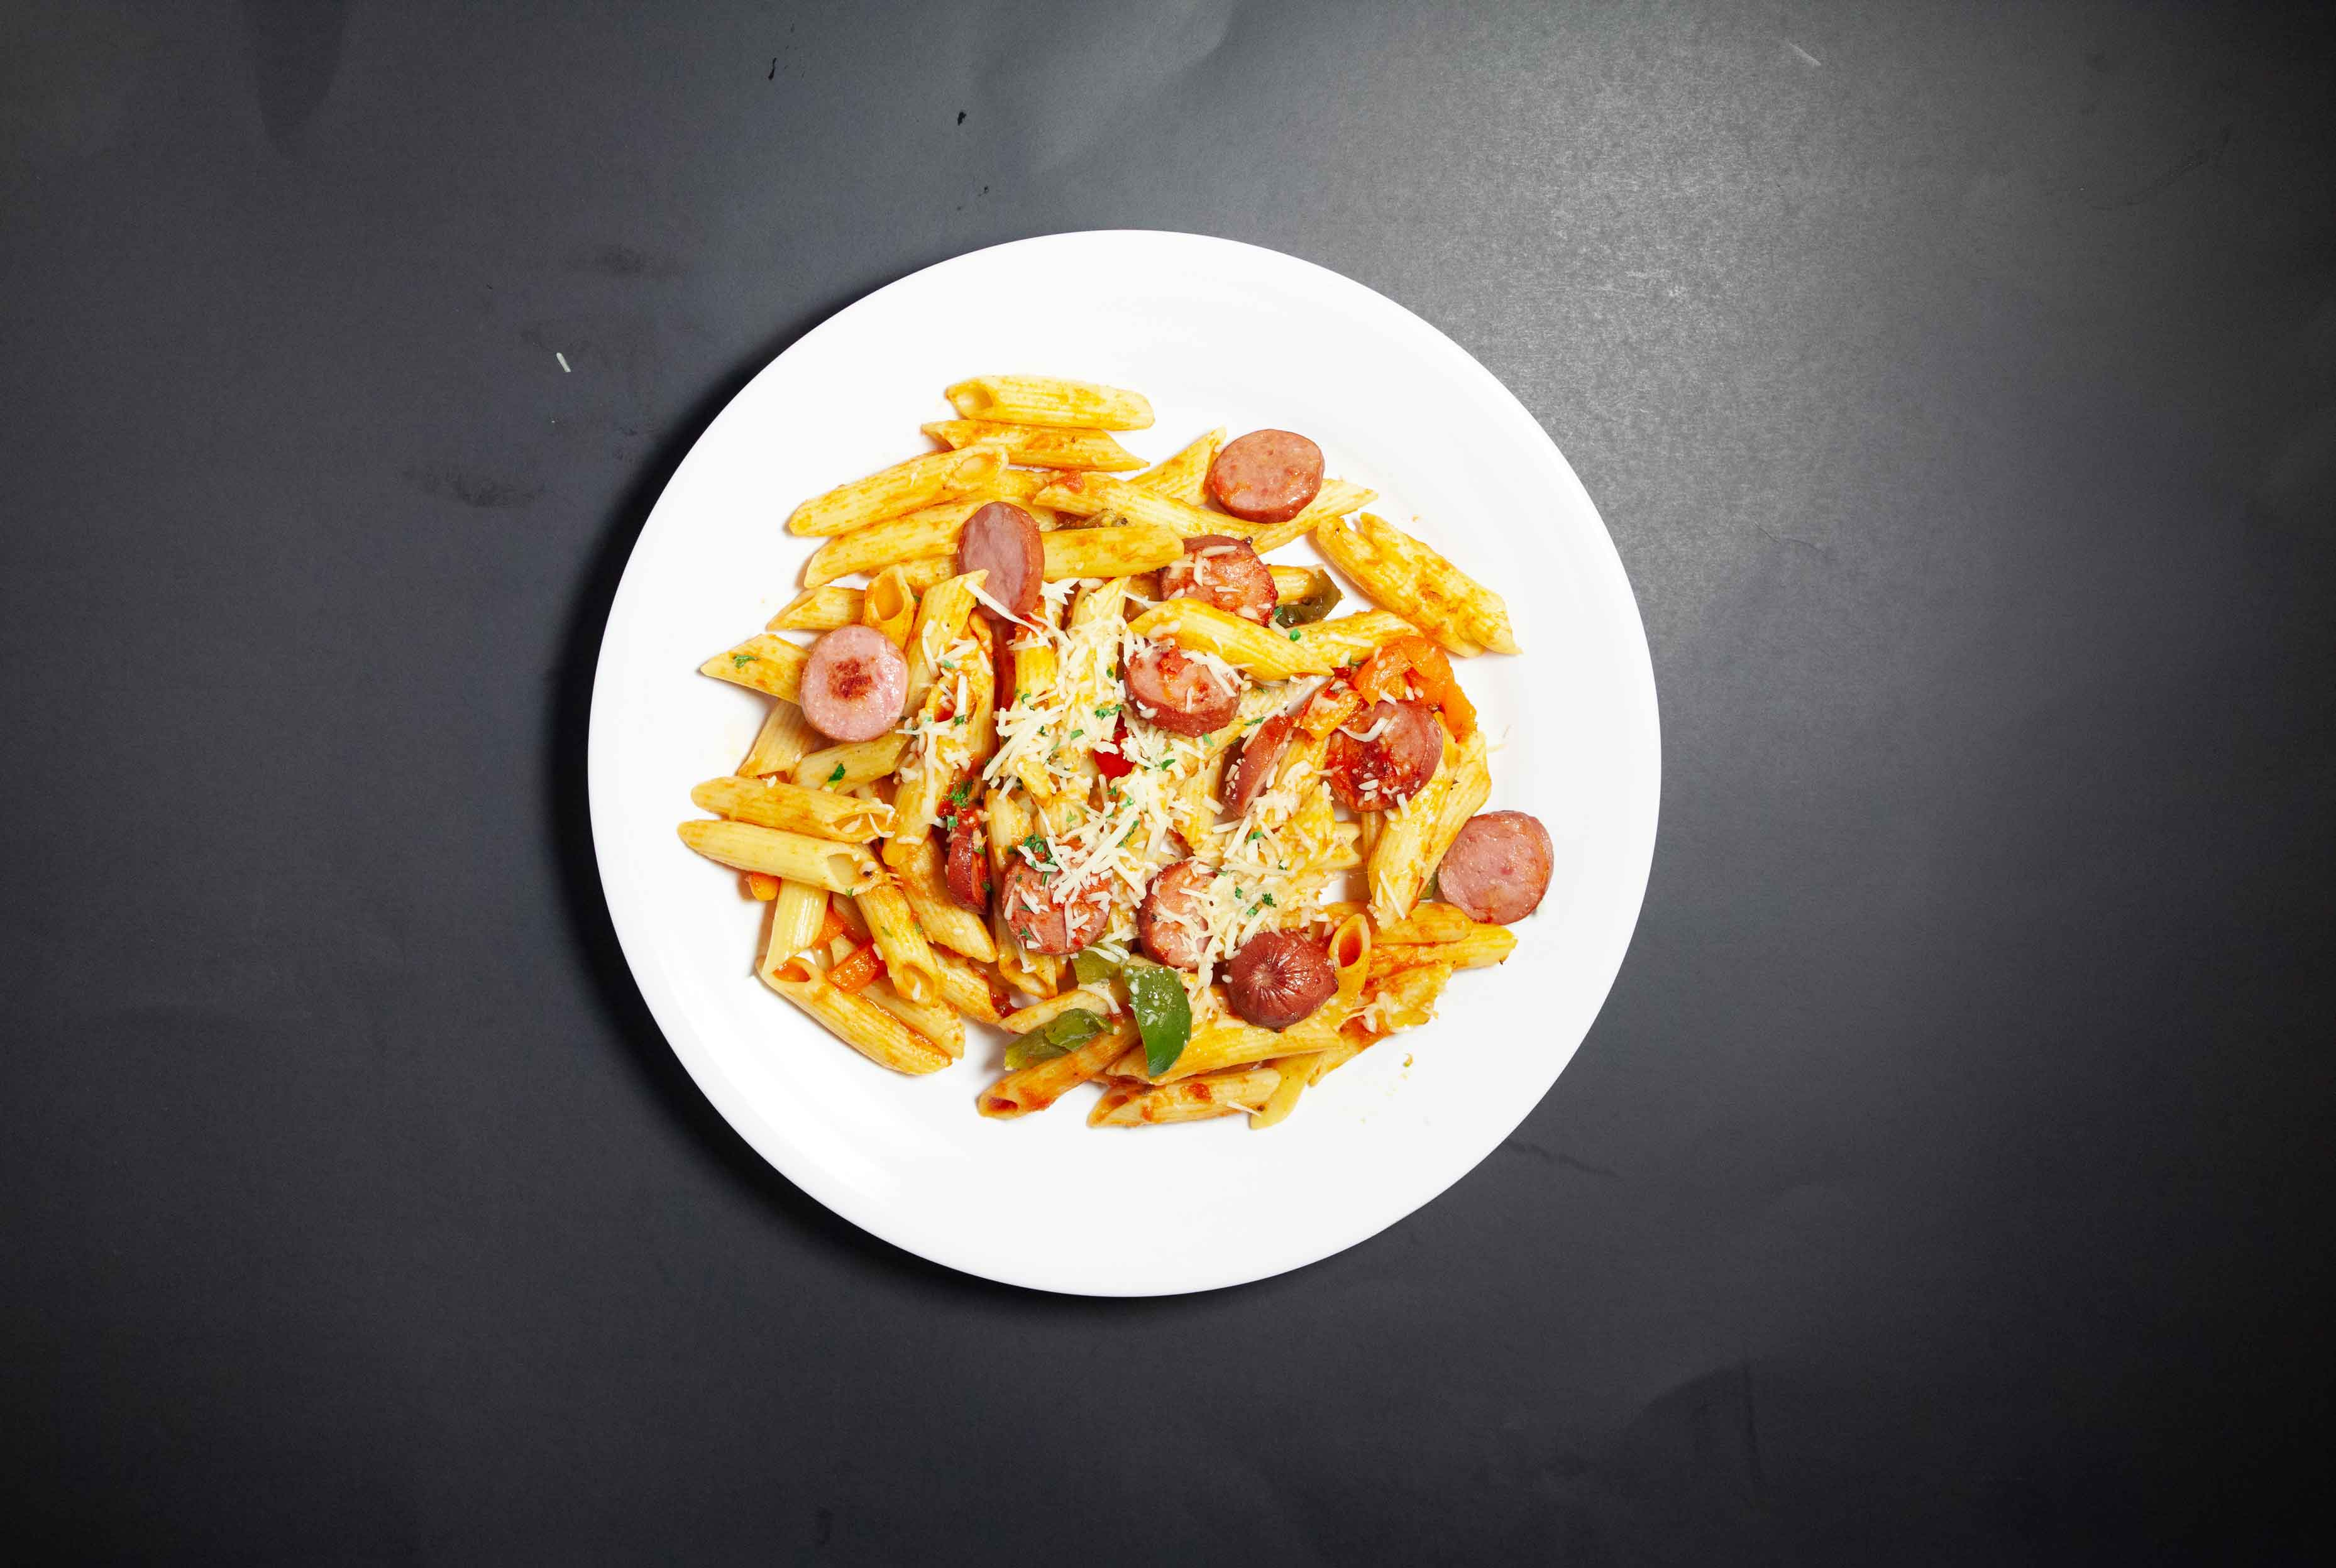 Cajun Turkey Sausage Pasta - Build